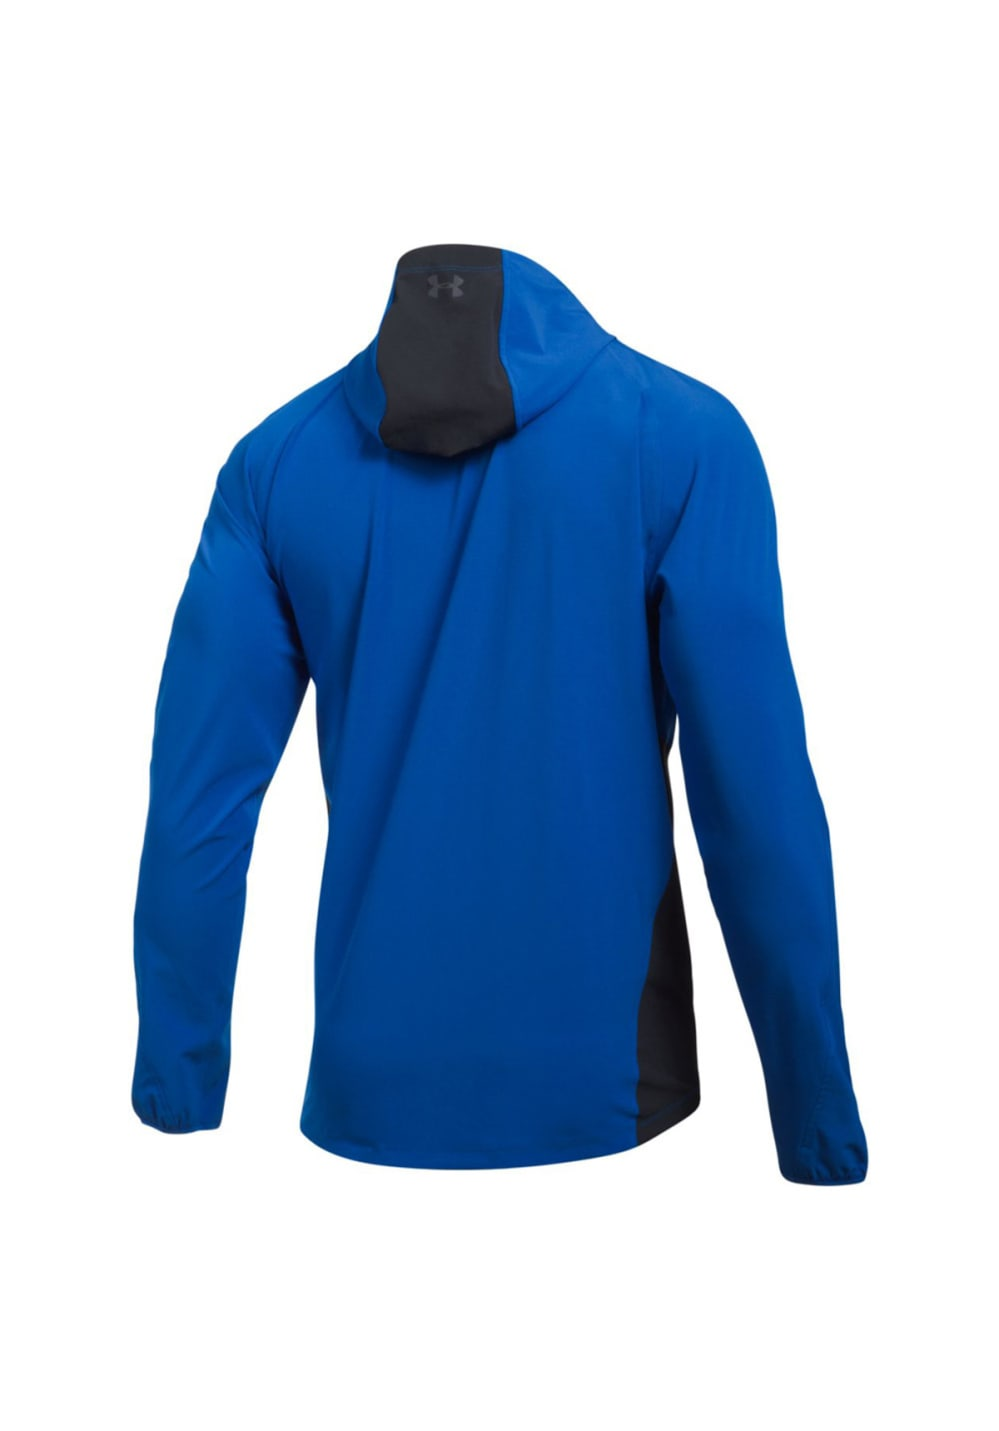 Activewear Jackets Blue Under Armour Outrun The Storm Mens Running Jacket Sporting Goods